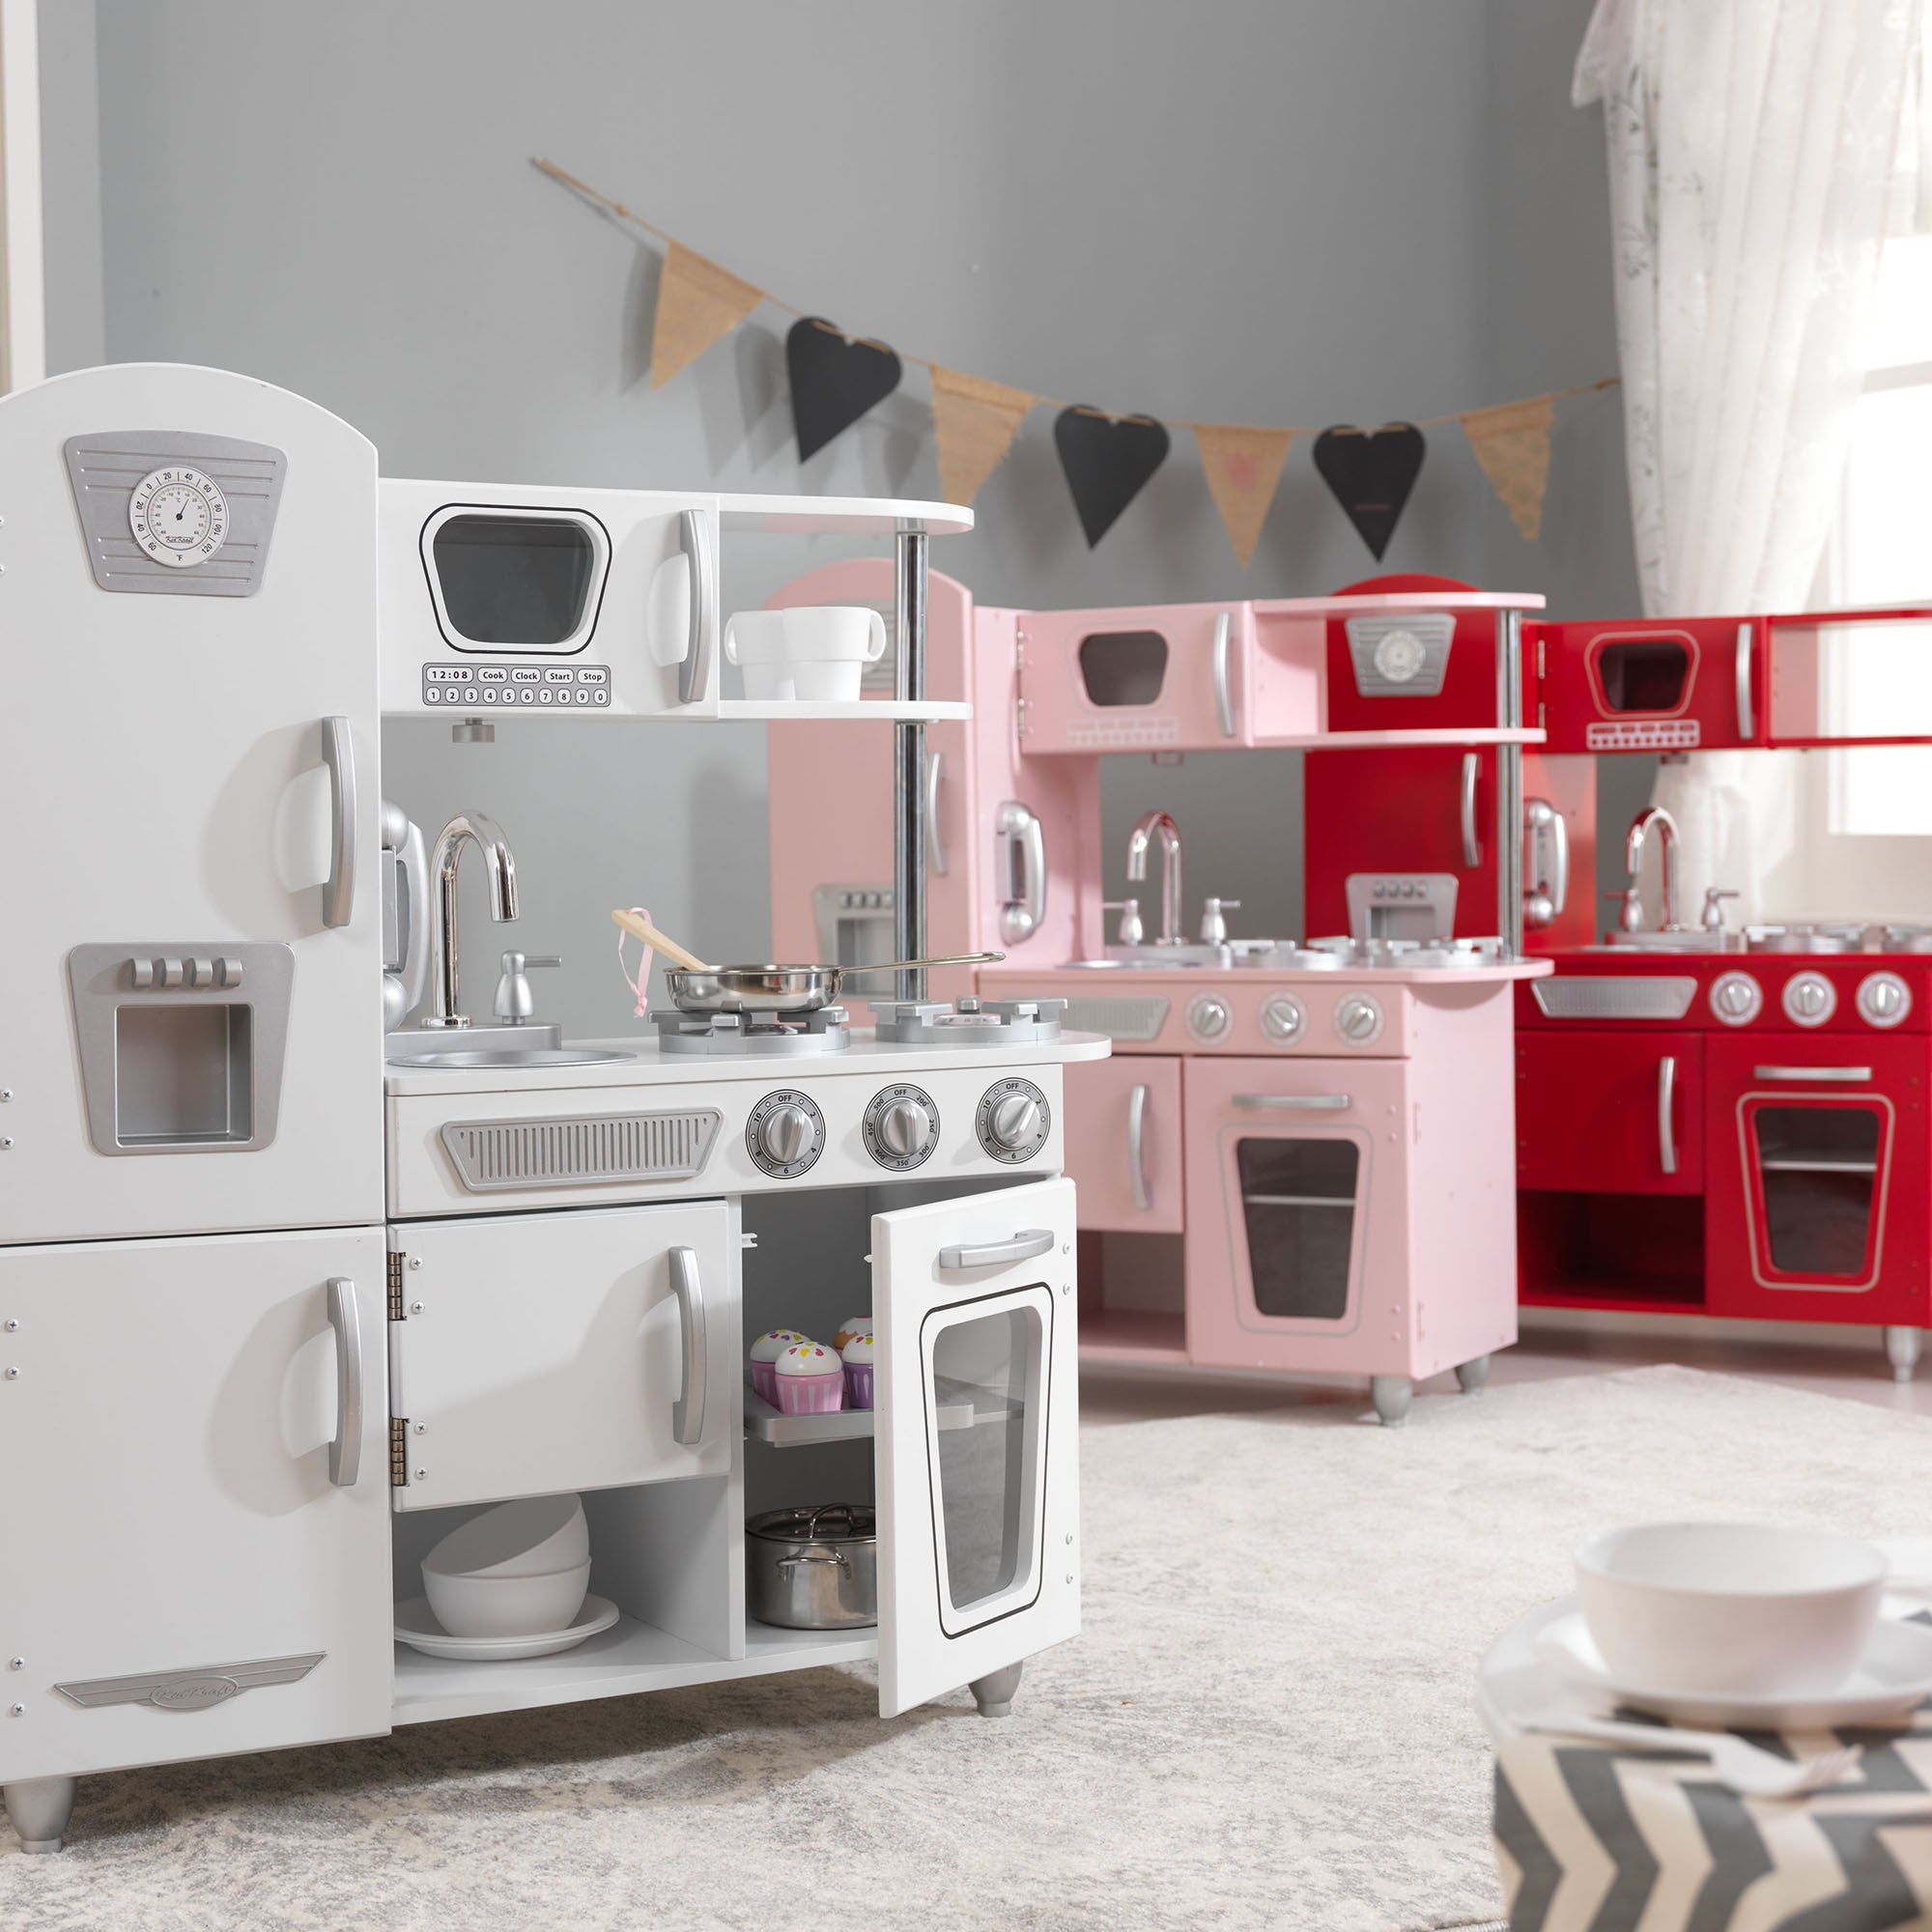 Kidkraft Retro Kitchen for Kids Kidkraft Toy Kitchens & Play Food at Little Earth Nest Eco Shop